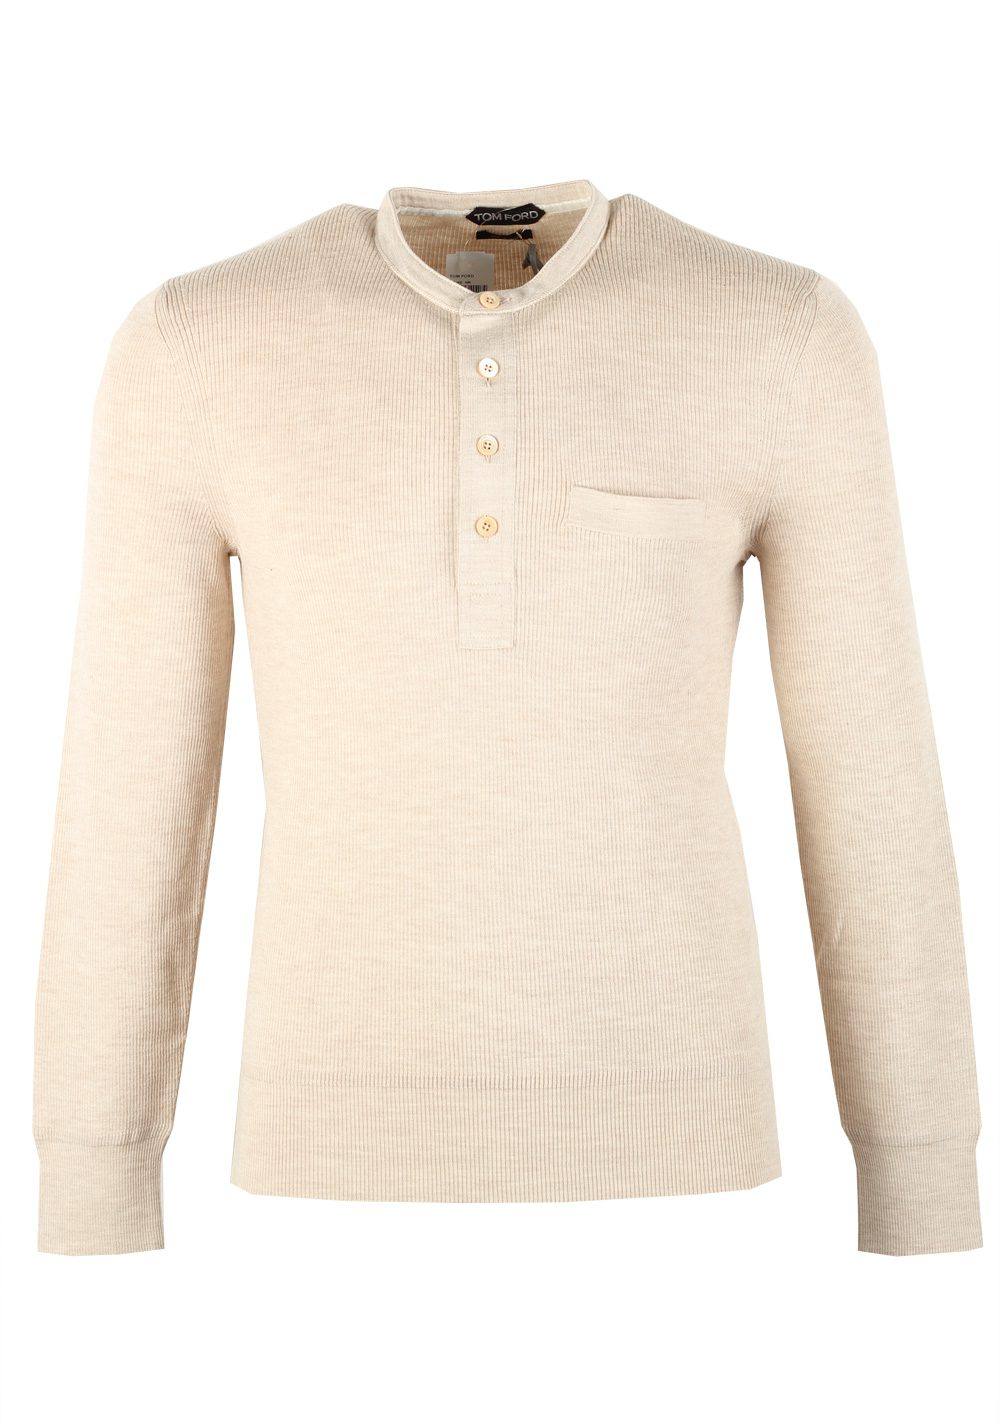 TOM FORD Beige Long Sleeve Henley Sweater Size 48 / 38R U.S. In Wool Silk | Costume Limité